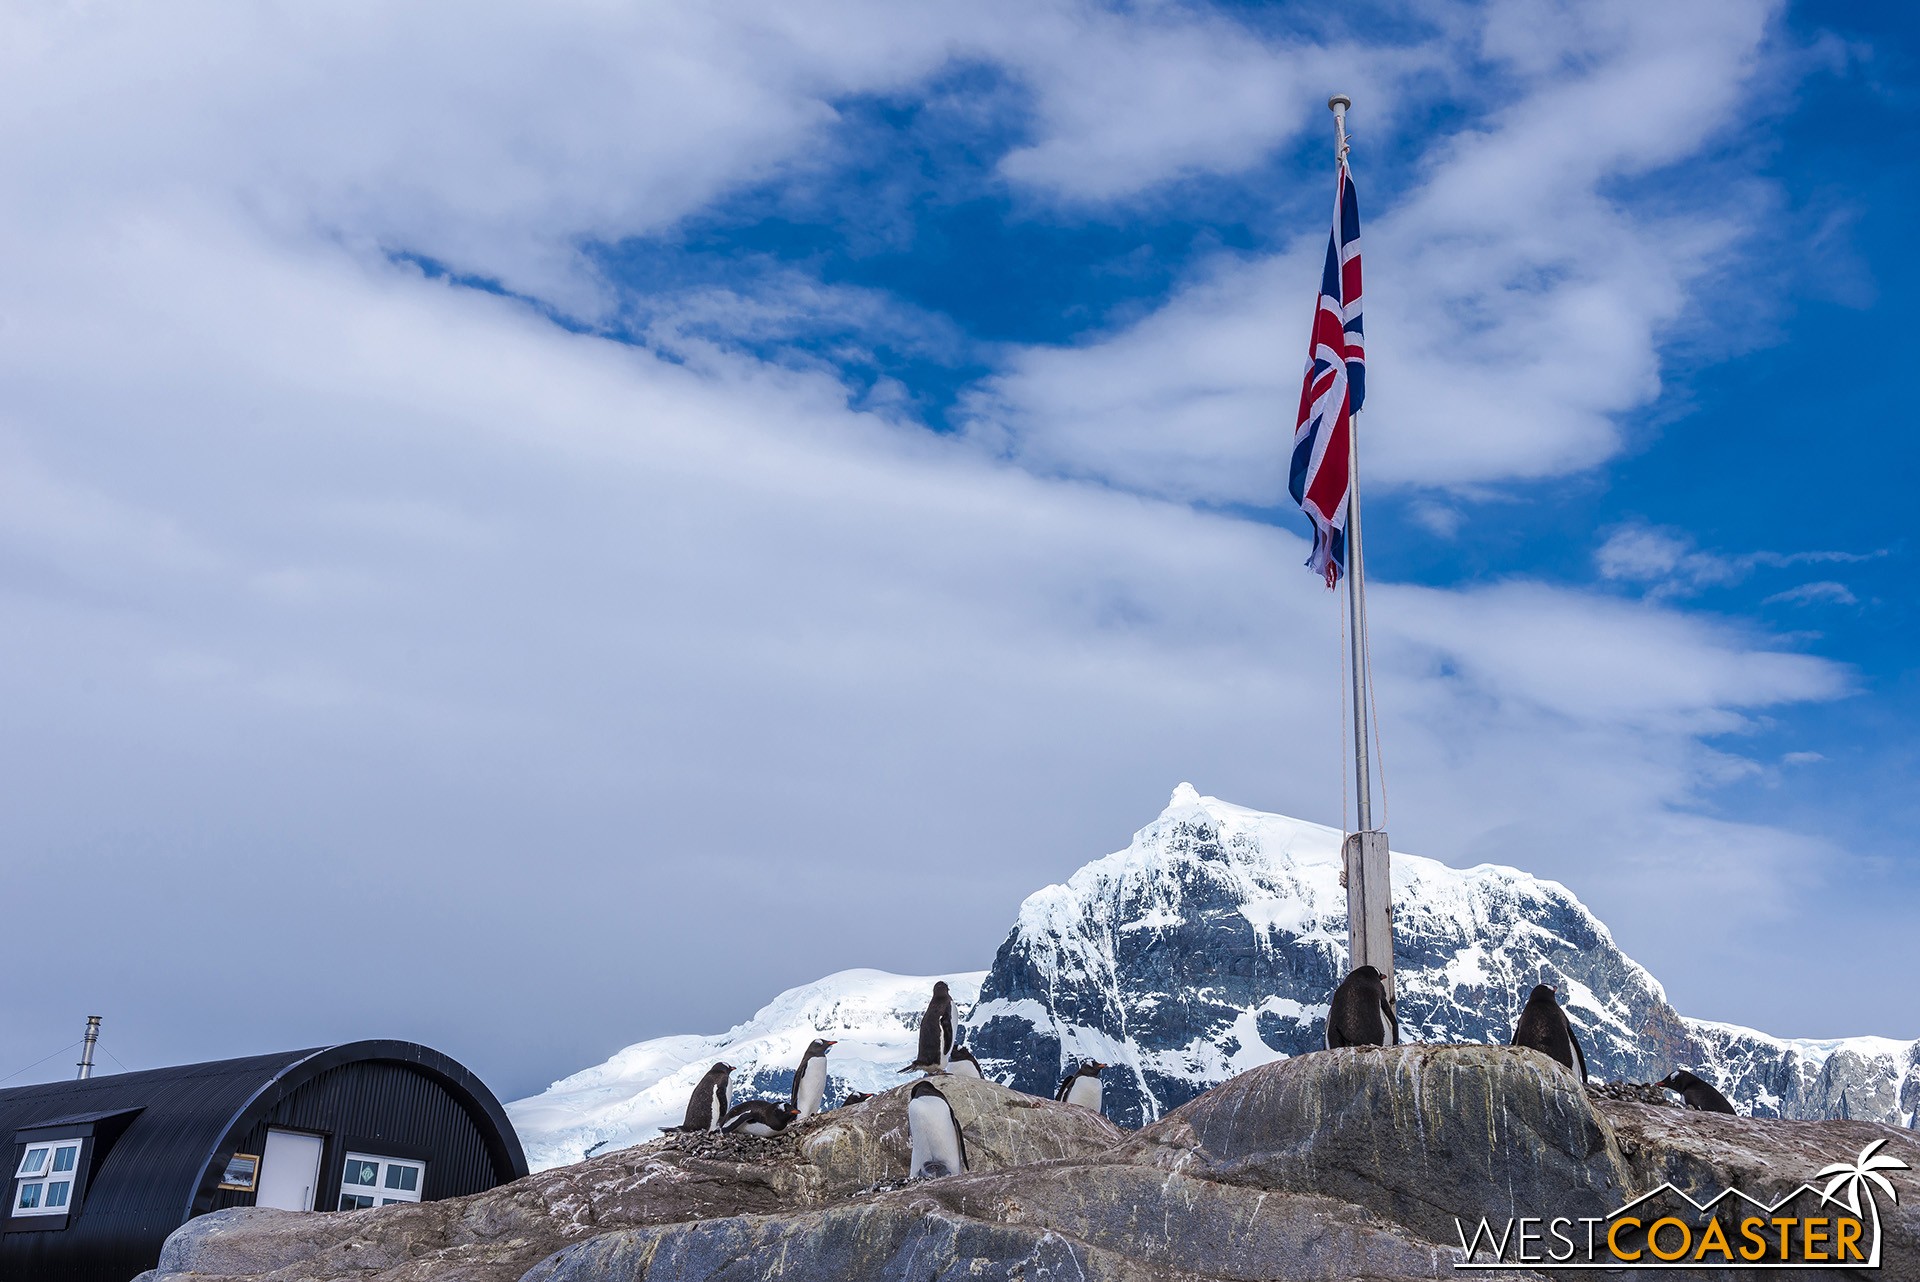 The British presence at Port Lockroy persists through today.